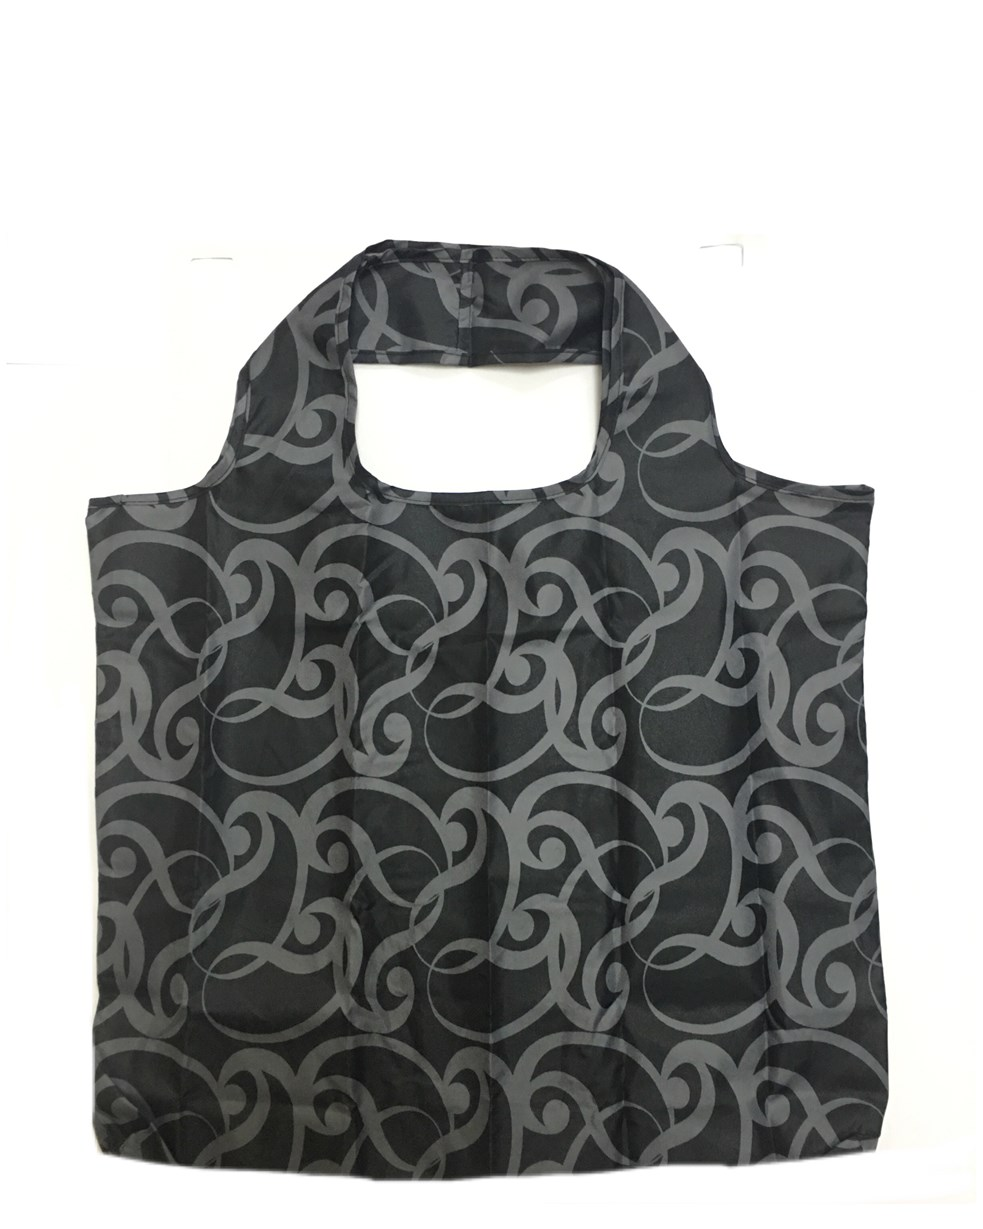 Torune - Recoro Shopping Bag 'Geometry' (L)